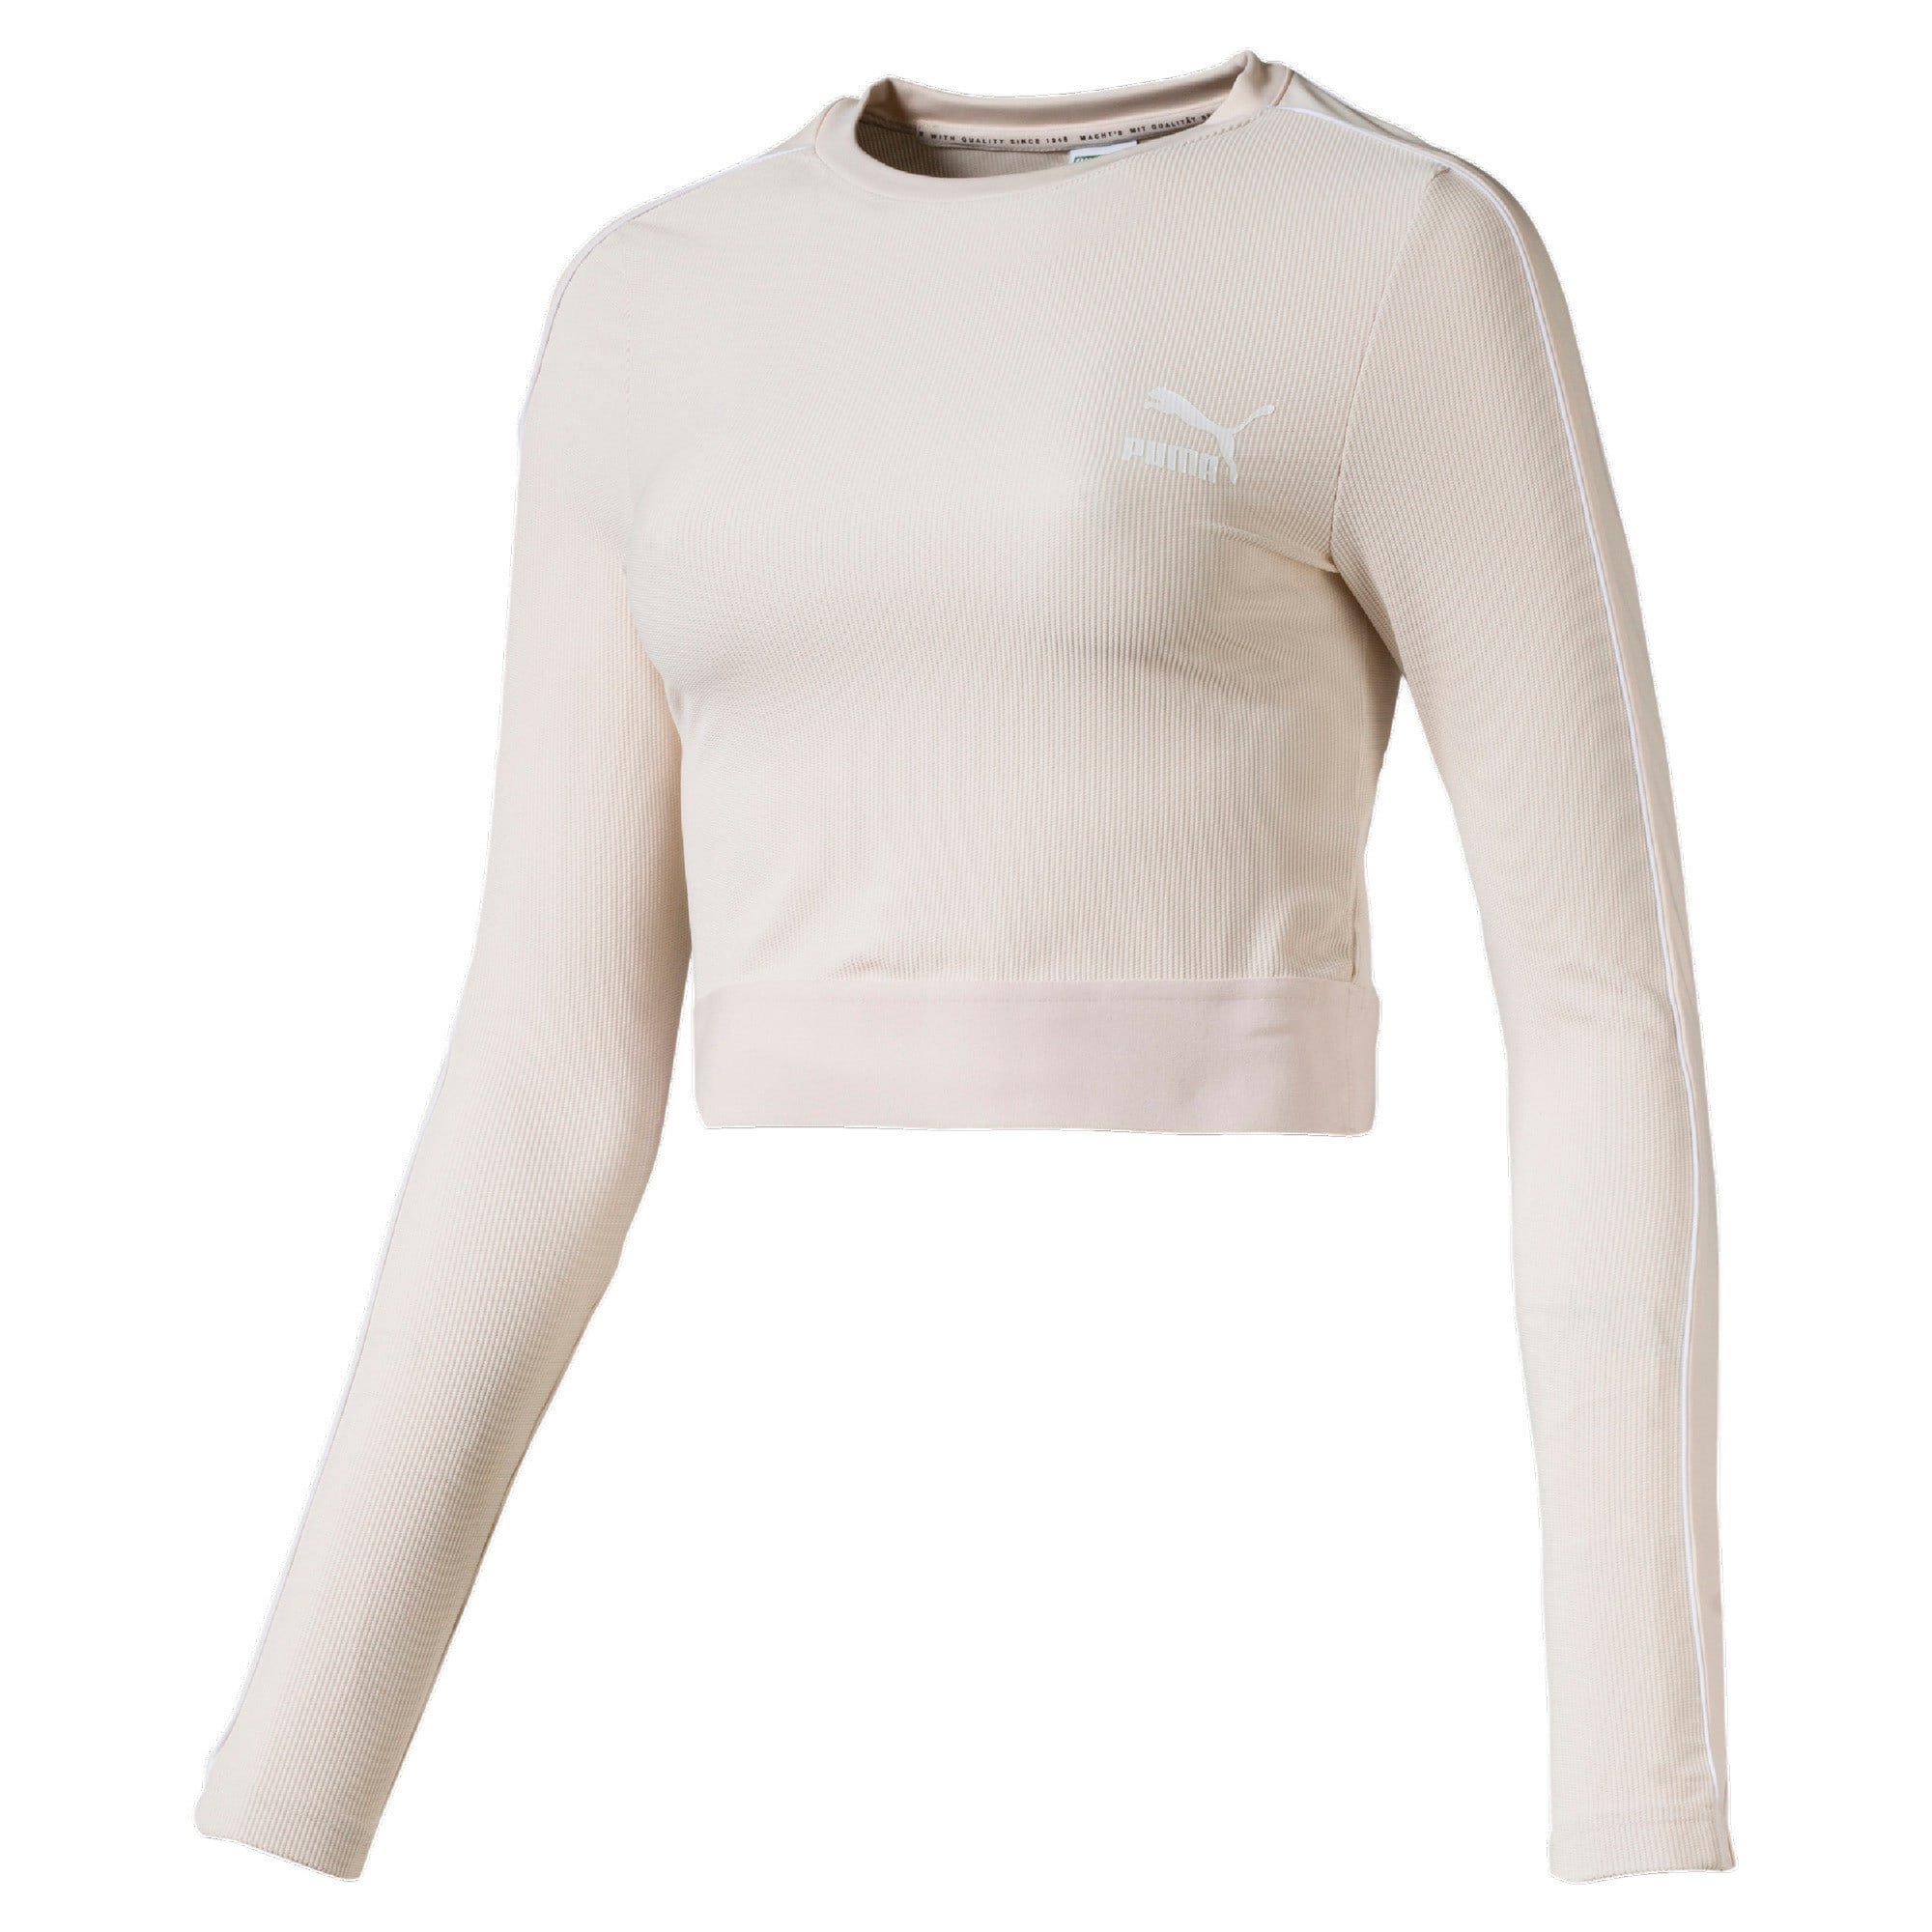 Thumbnail 4 of Classics Rib Cropped Long Sleeve Women's Top, Pastel Parchment, medium